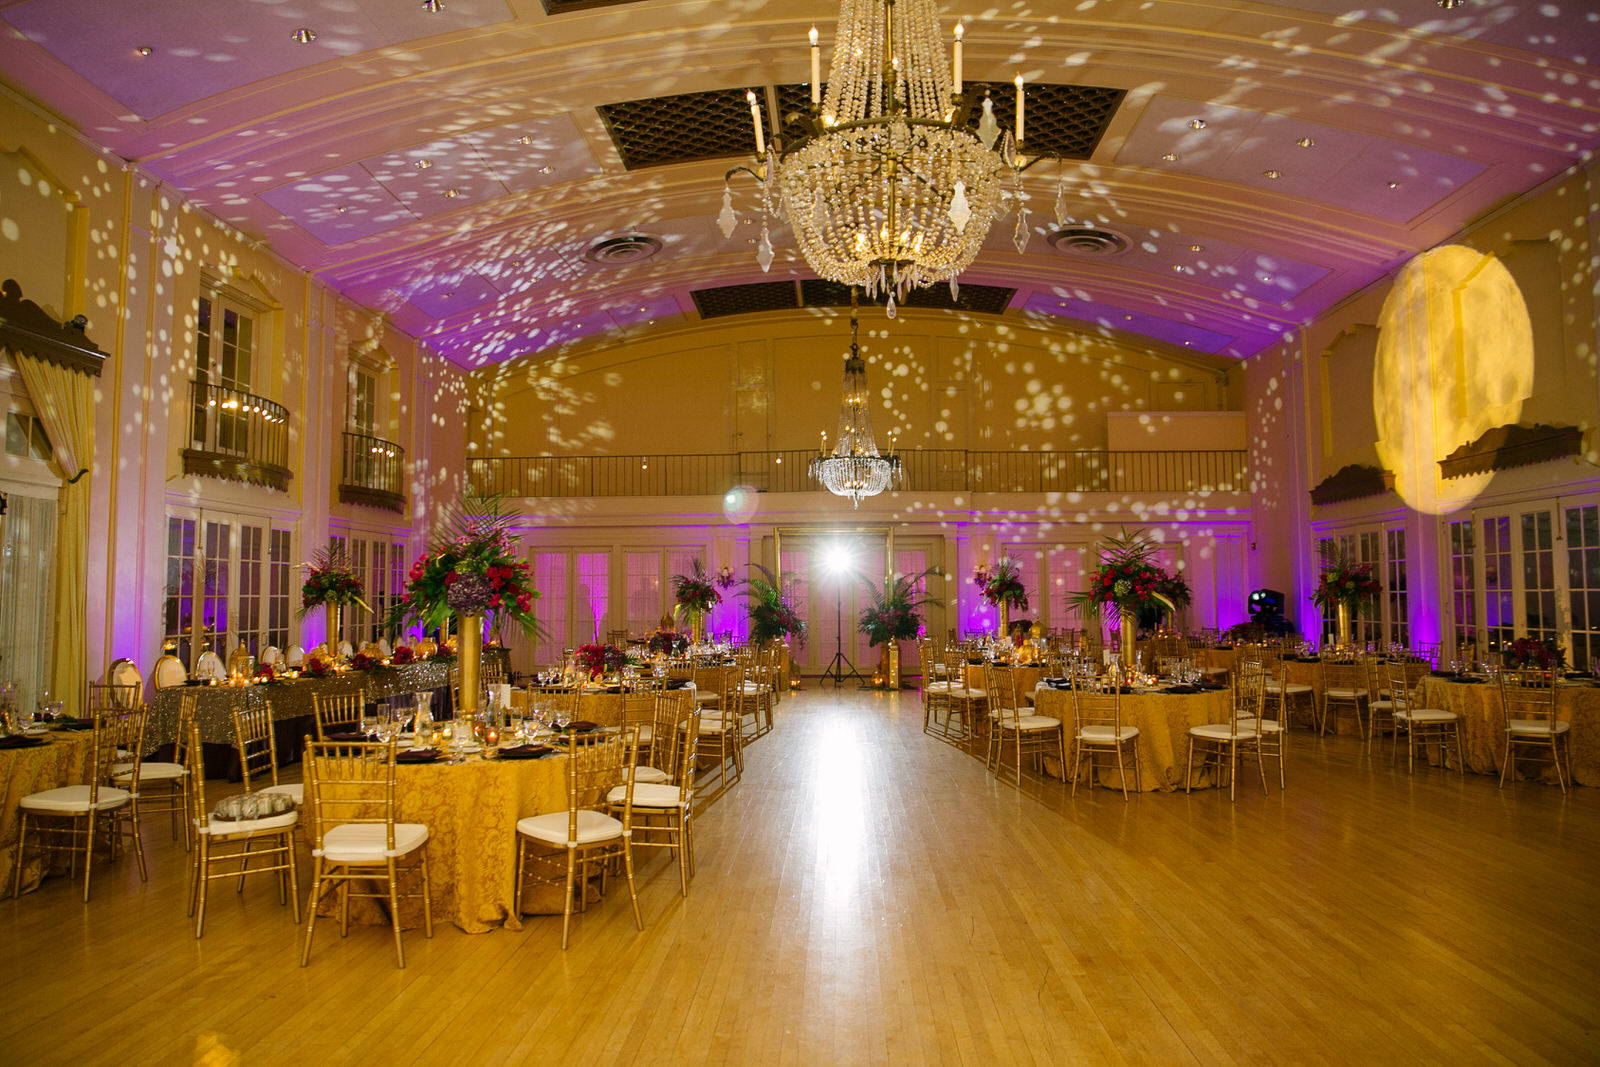 wedding venue called Adam's Lafayette Club